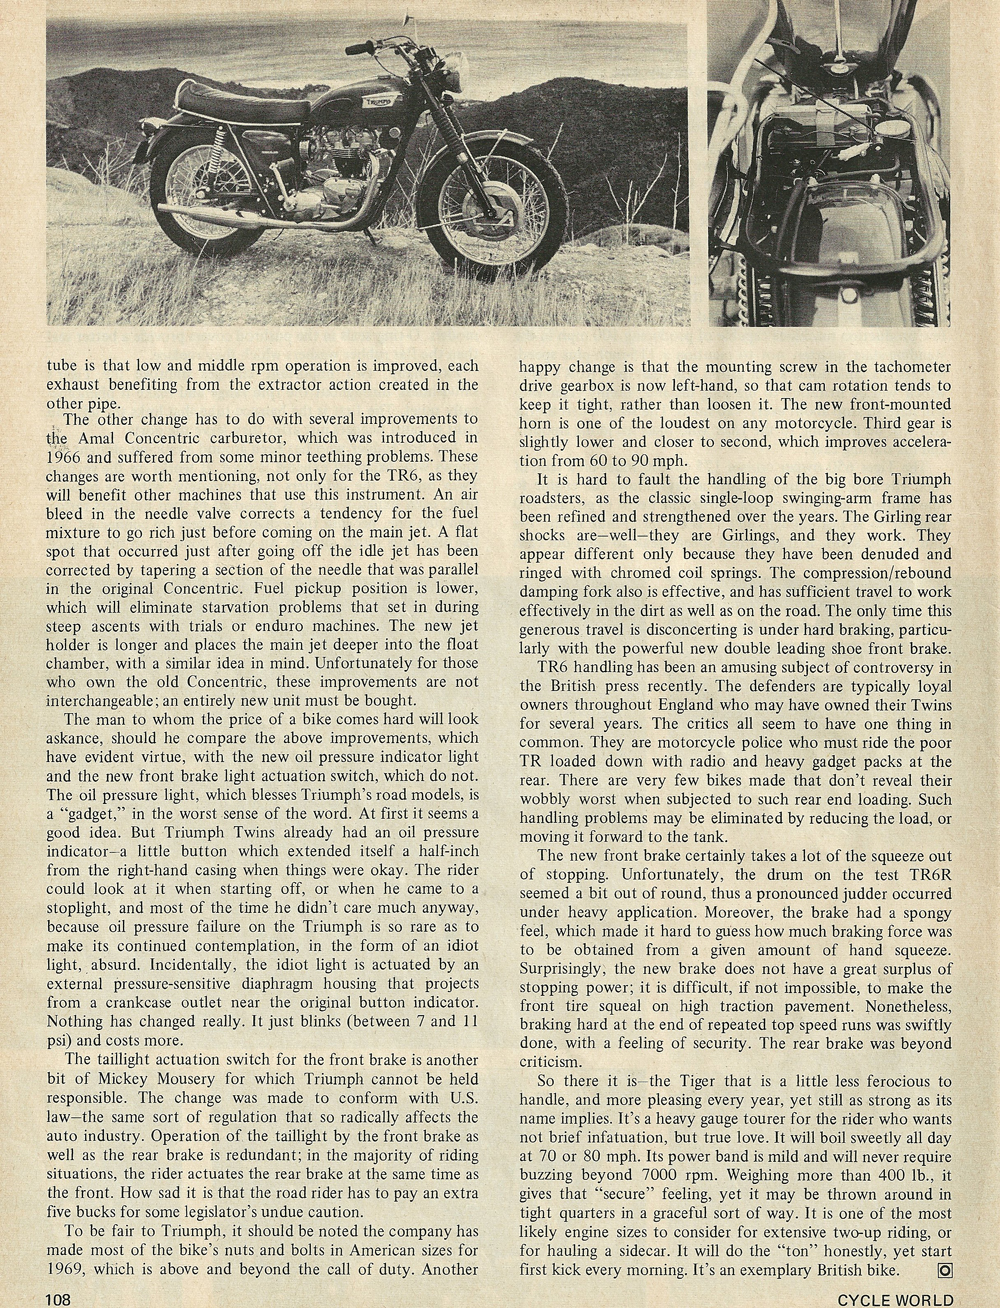 1969 Triumph Tiger 650 road test 3.jpg